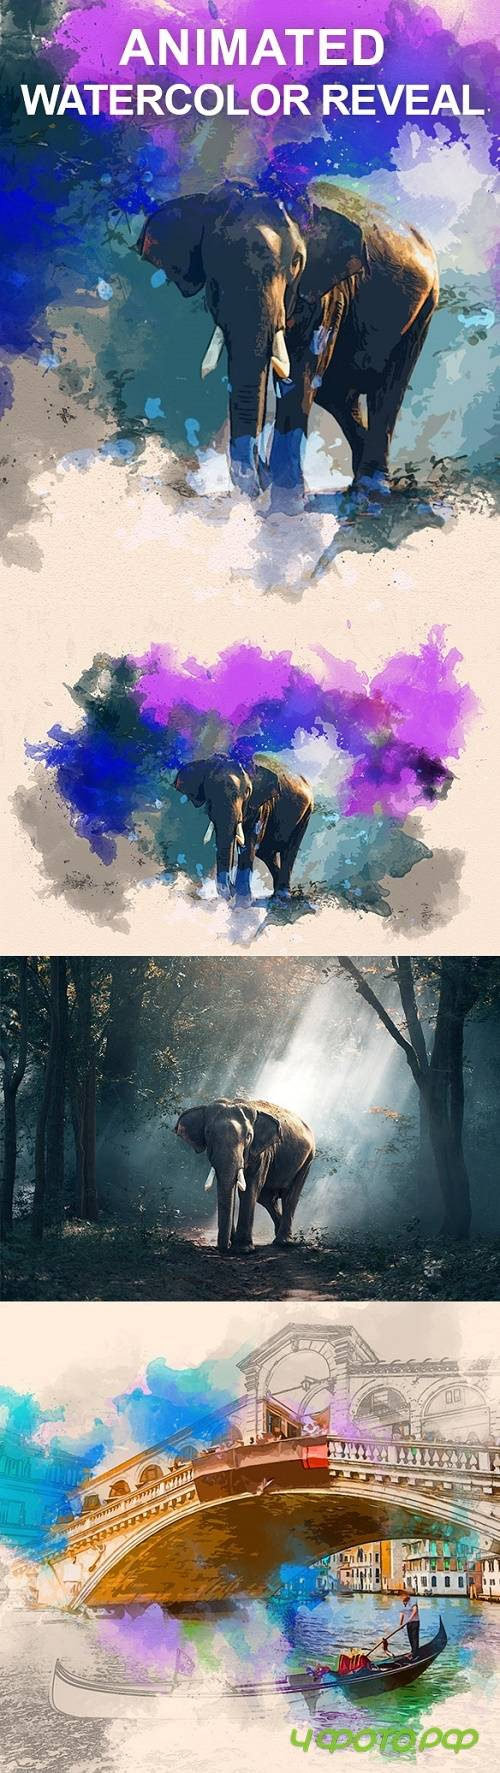 Animated Watercolor Reveal Photoshop Action 21721025